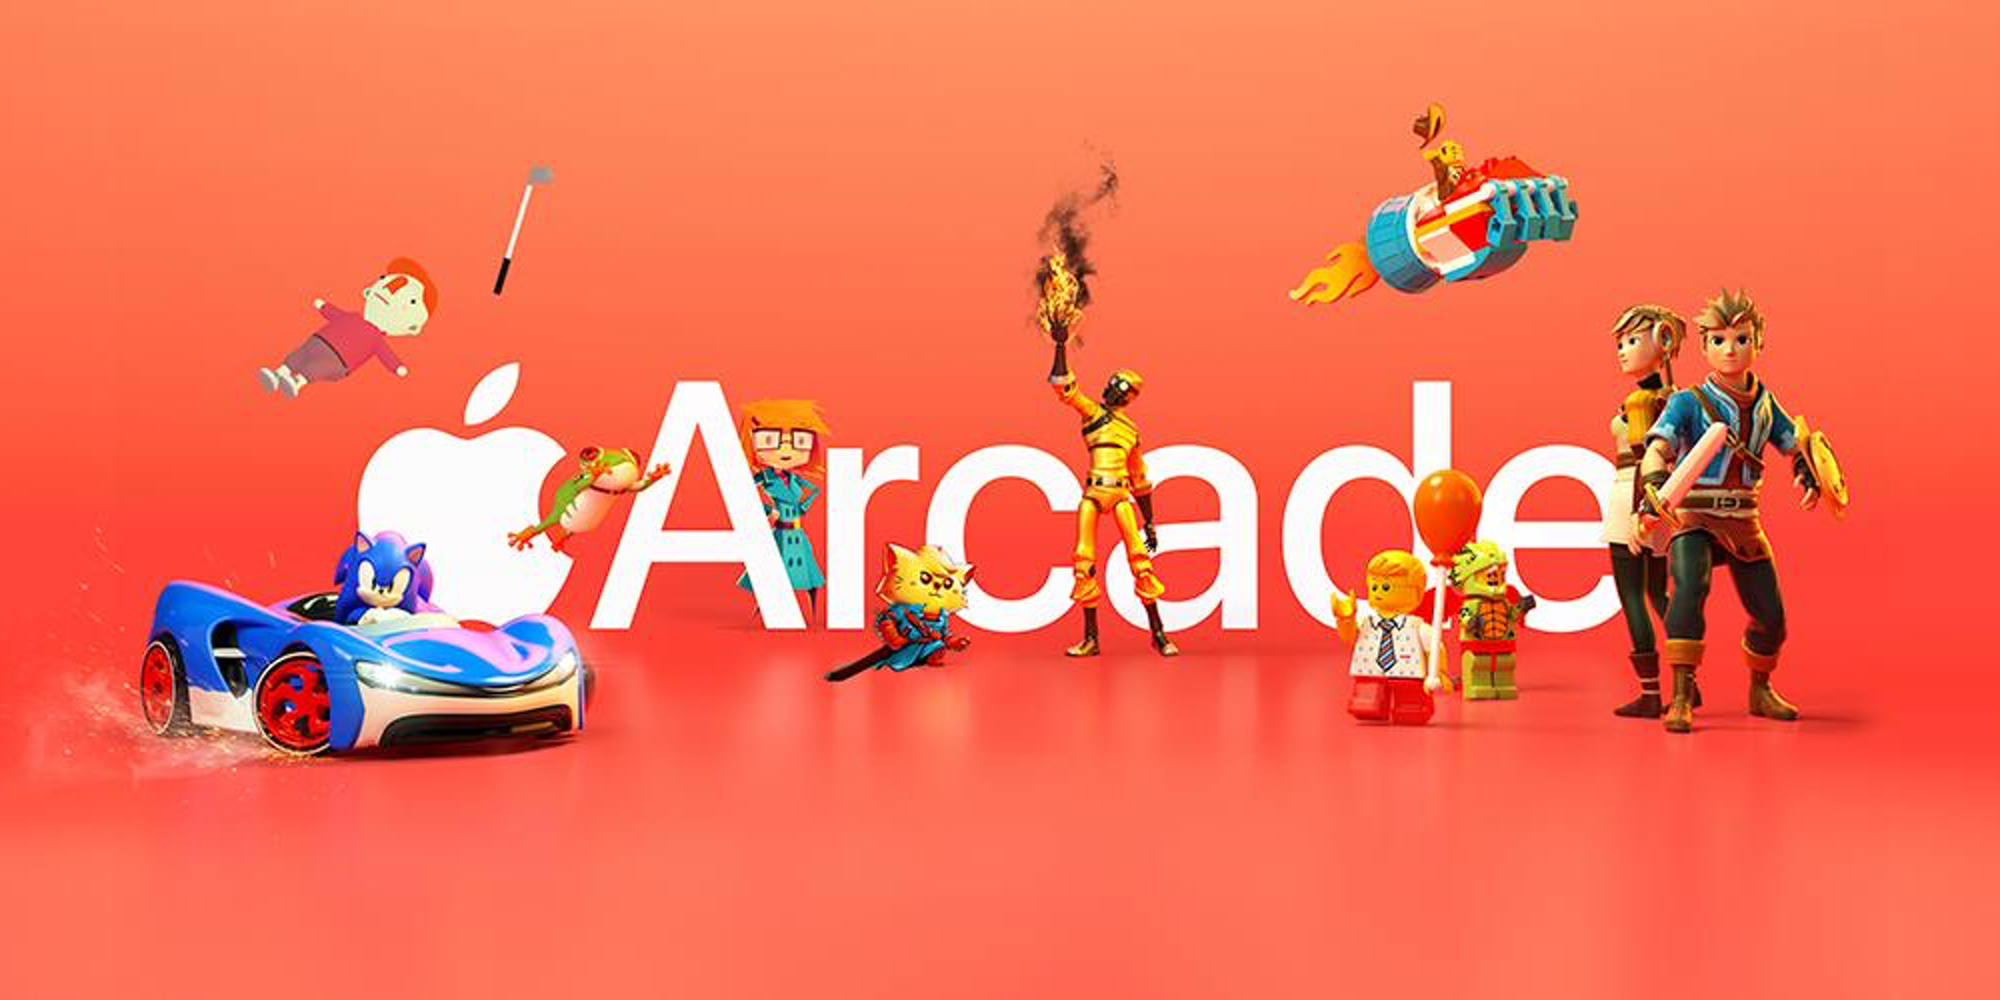 Bloomberg: Apple shifting Apple Arcade strategy, canceling development of some games